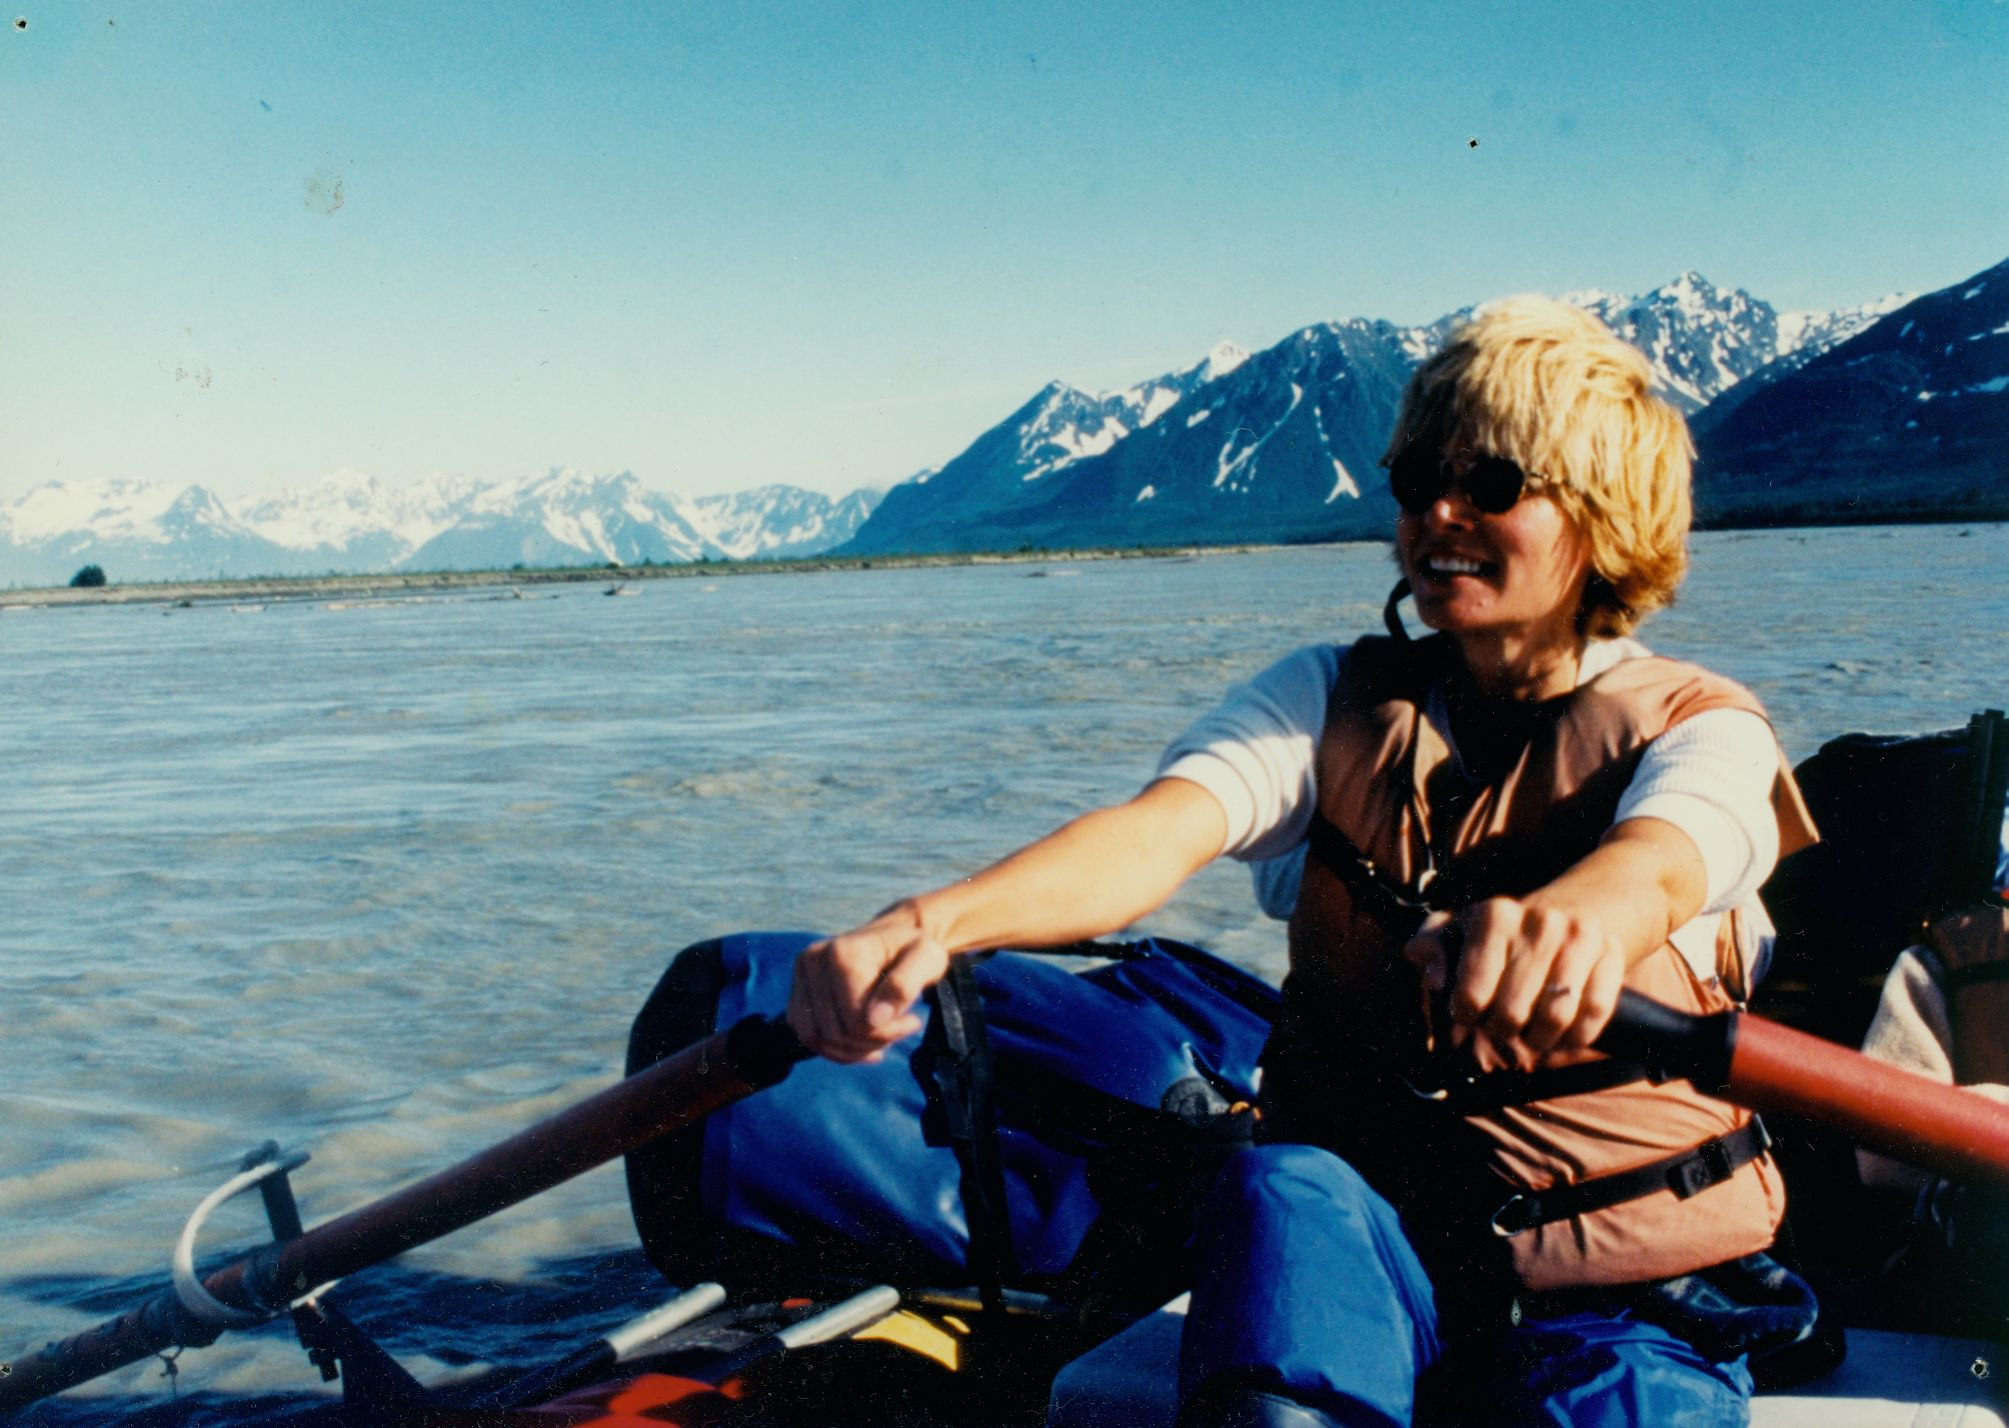 Rowing the Copper River in Alaska